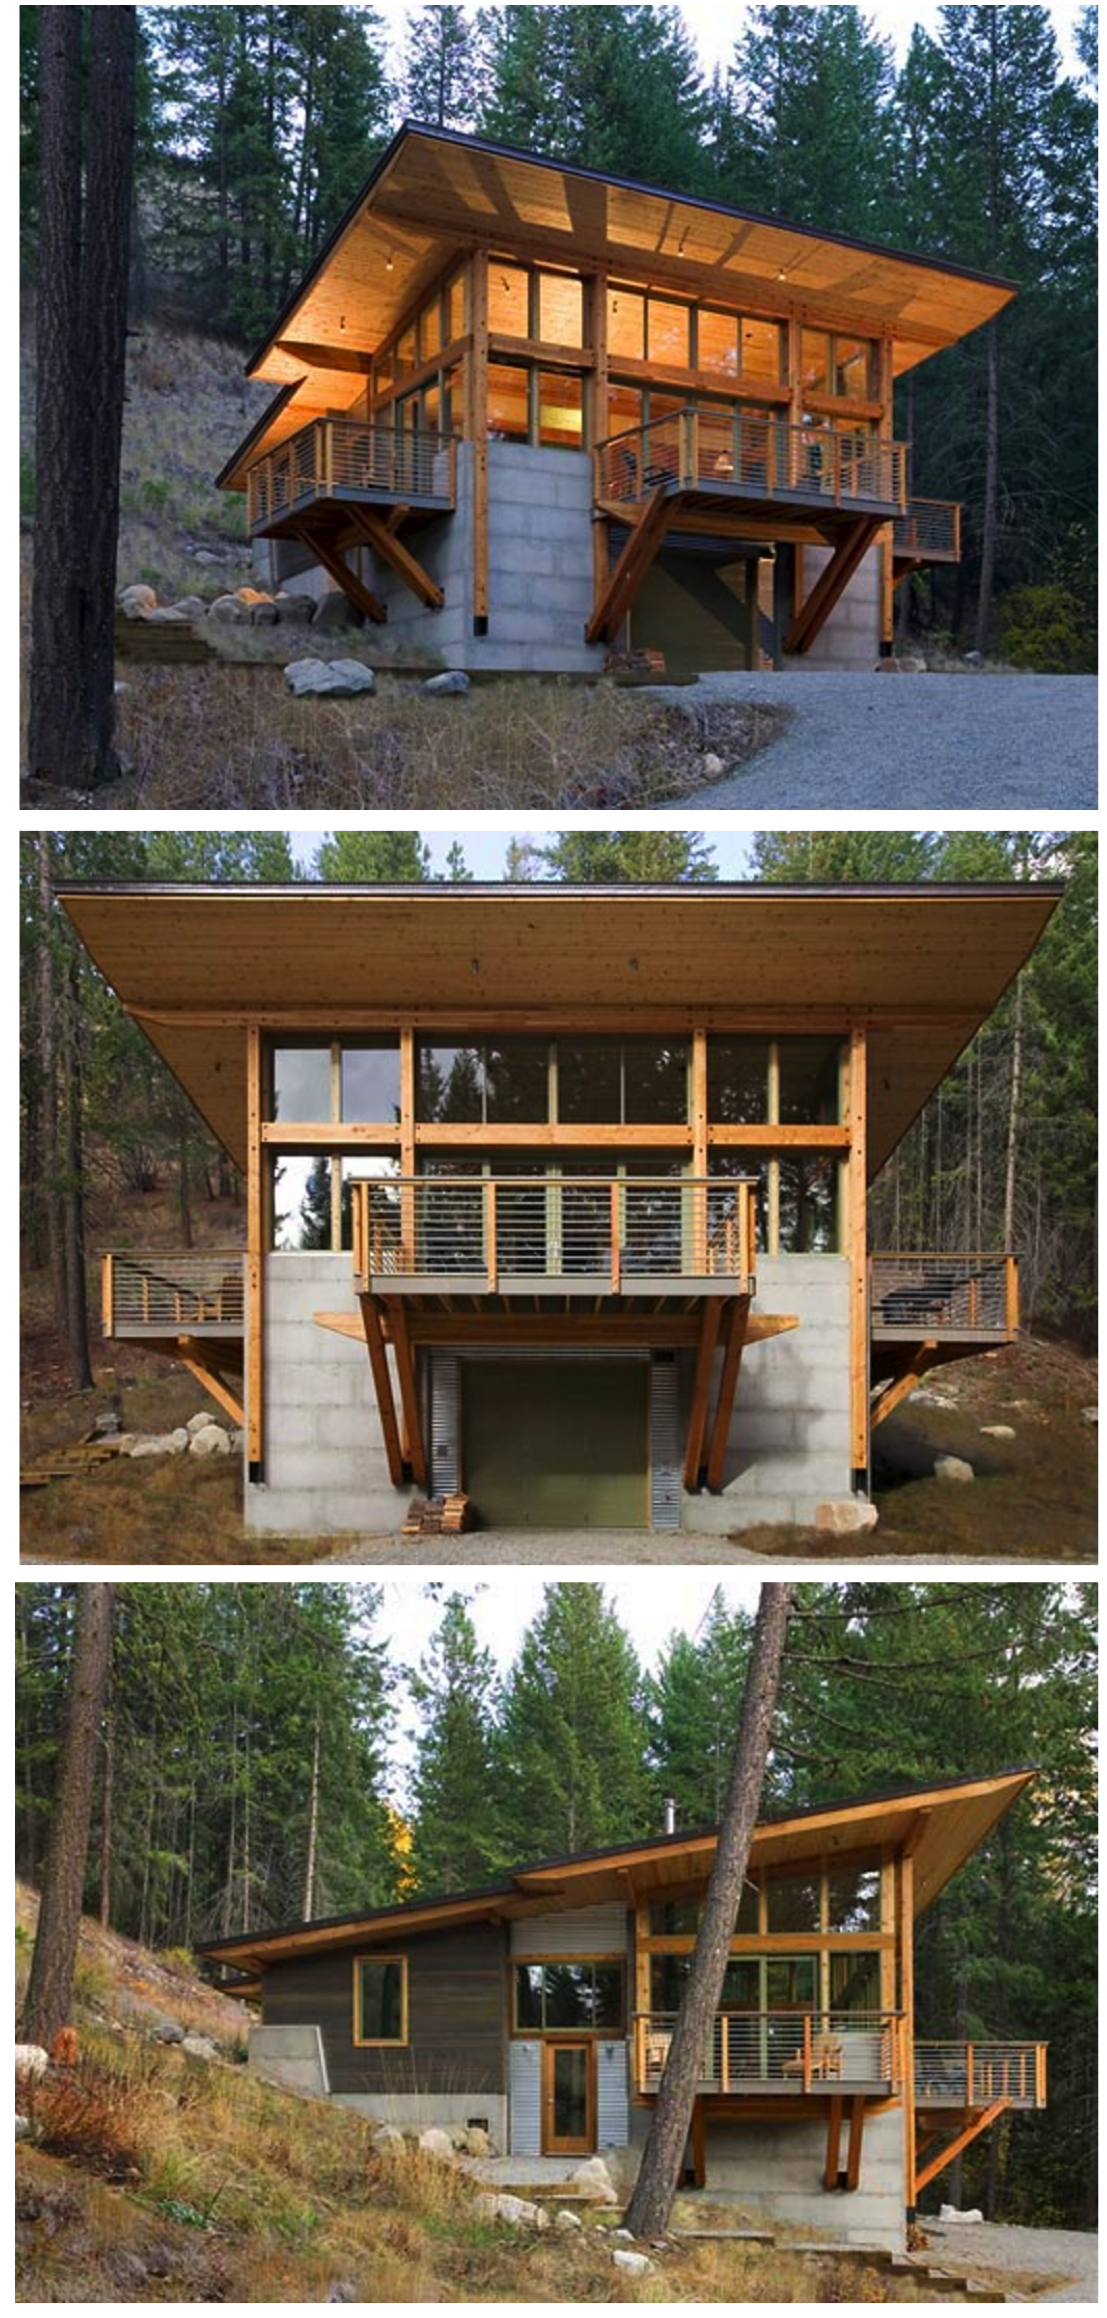 Wintergreen Cabin By Www Balanceassociates Com In 2020 Tiny House Cabin Tiny House Design Building A House